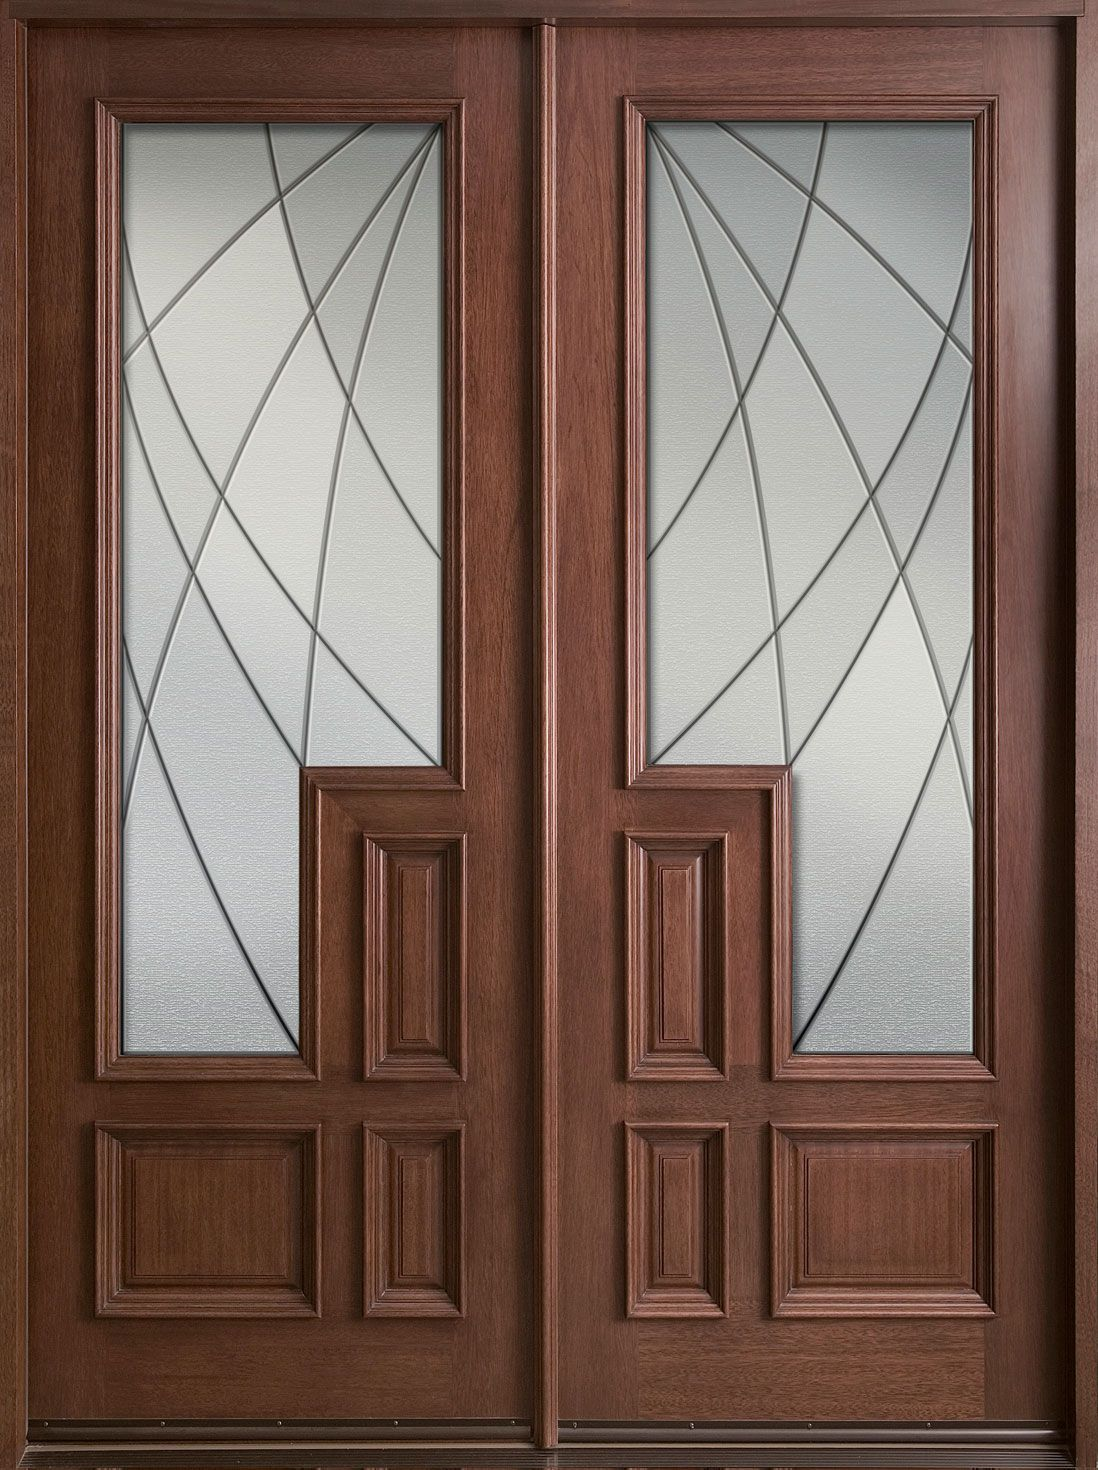 Inspiring double fiberglass entry door as furniture for for Exterior front entry double doors